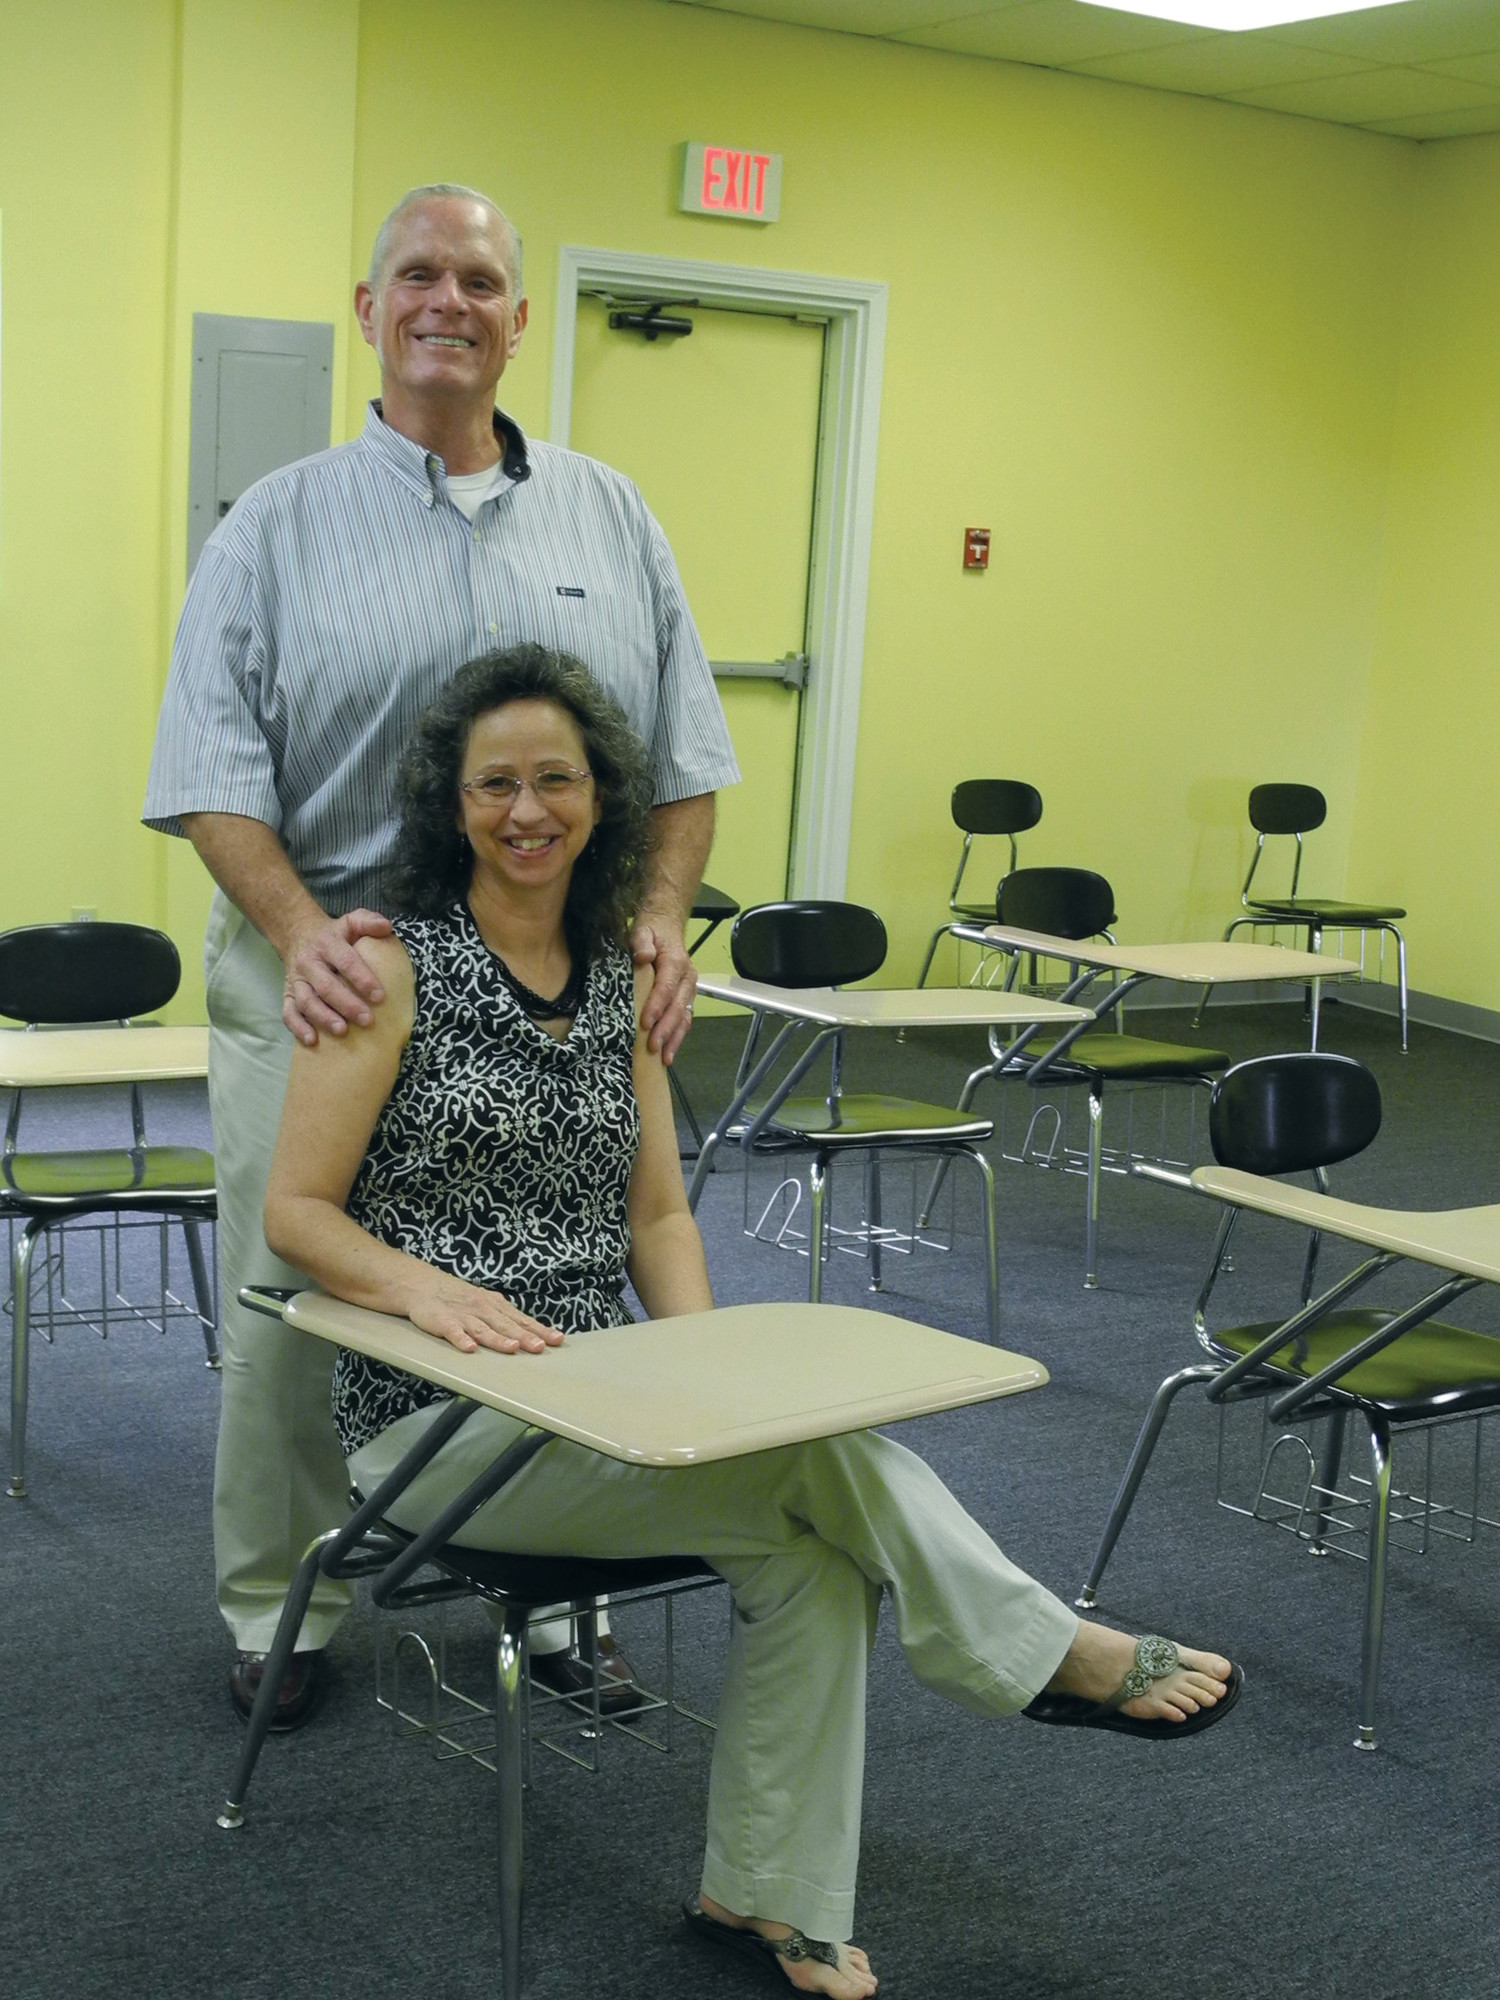 Sheila E Academy principal Allen Horn and his wife, Lisa Horn, are seen in a classroom at the school on Thomas Sumter Highway. They are preparing for the Aug. 20 opening of the new Christian school. Lisa Horn will serve the school as bookkeeper and secretary. The public is invited to learn more about the school and its mission at a meeting with the principal and other school staff at 6 p.m. Thursday at SEA, 4107 Thomas Sumter Highway (U.S. 521 North)